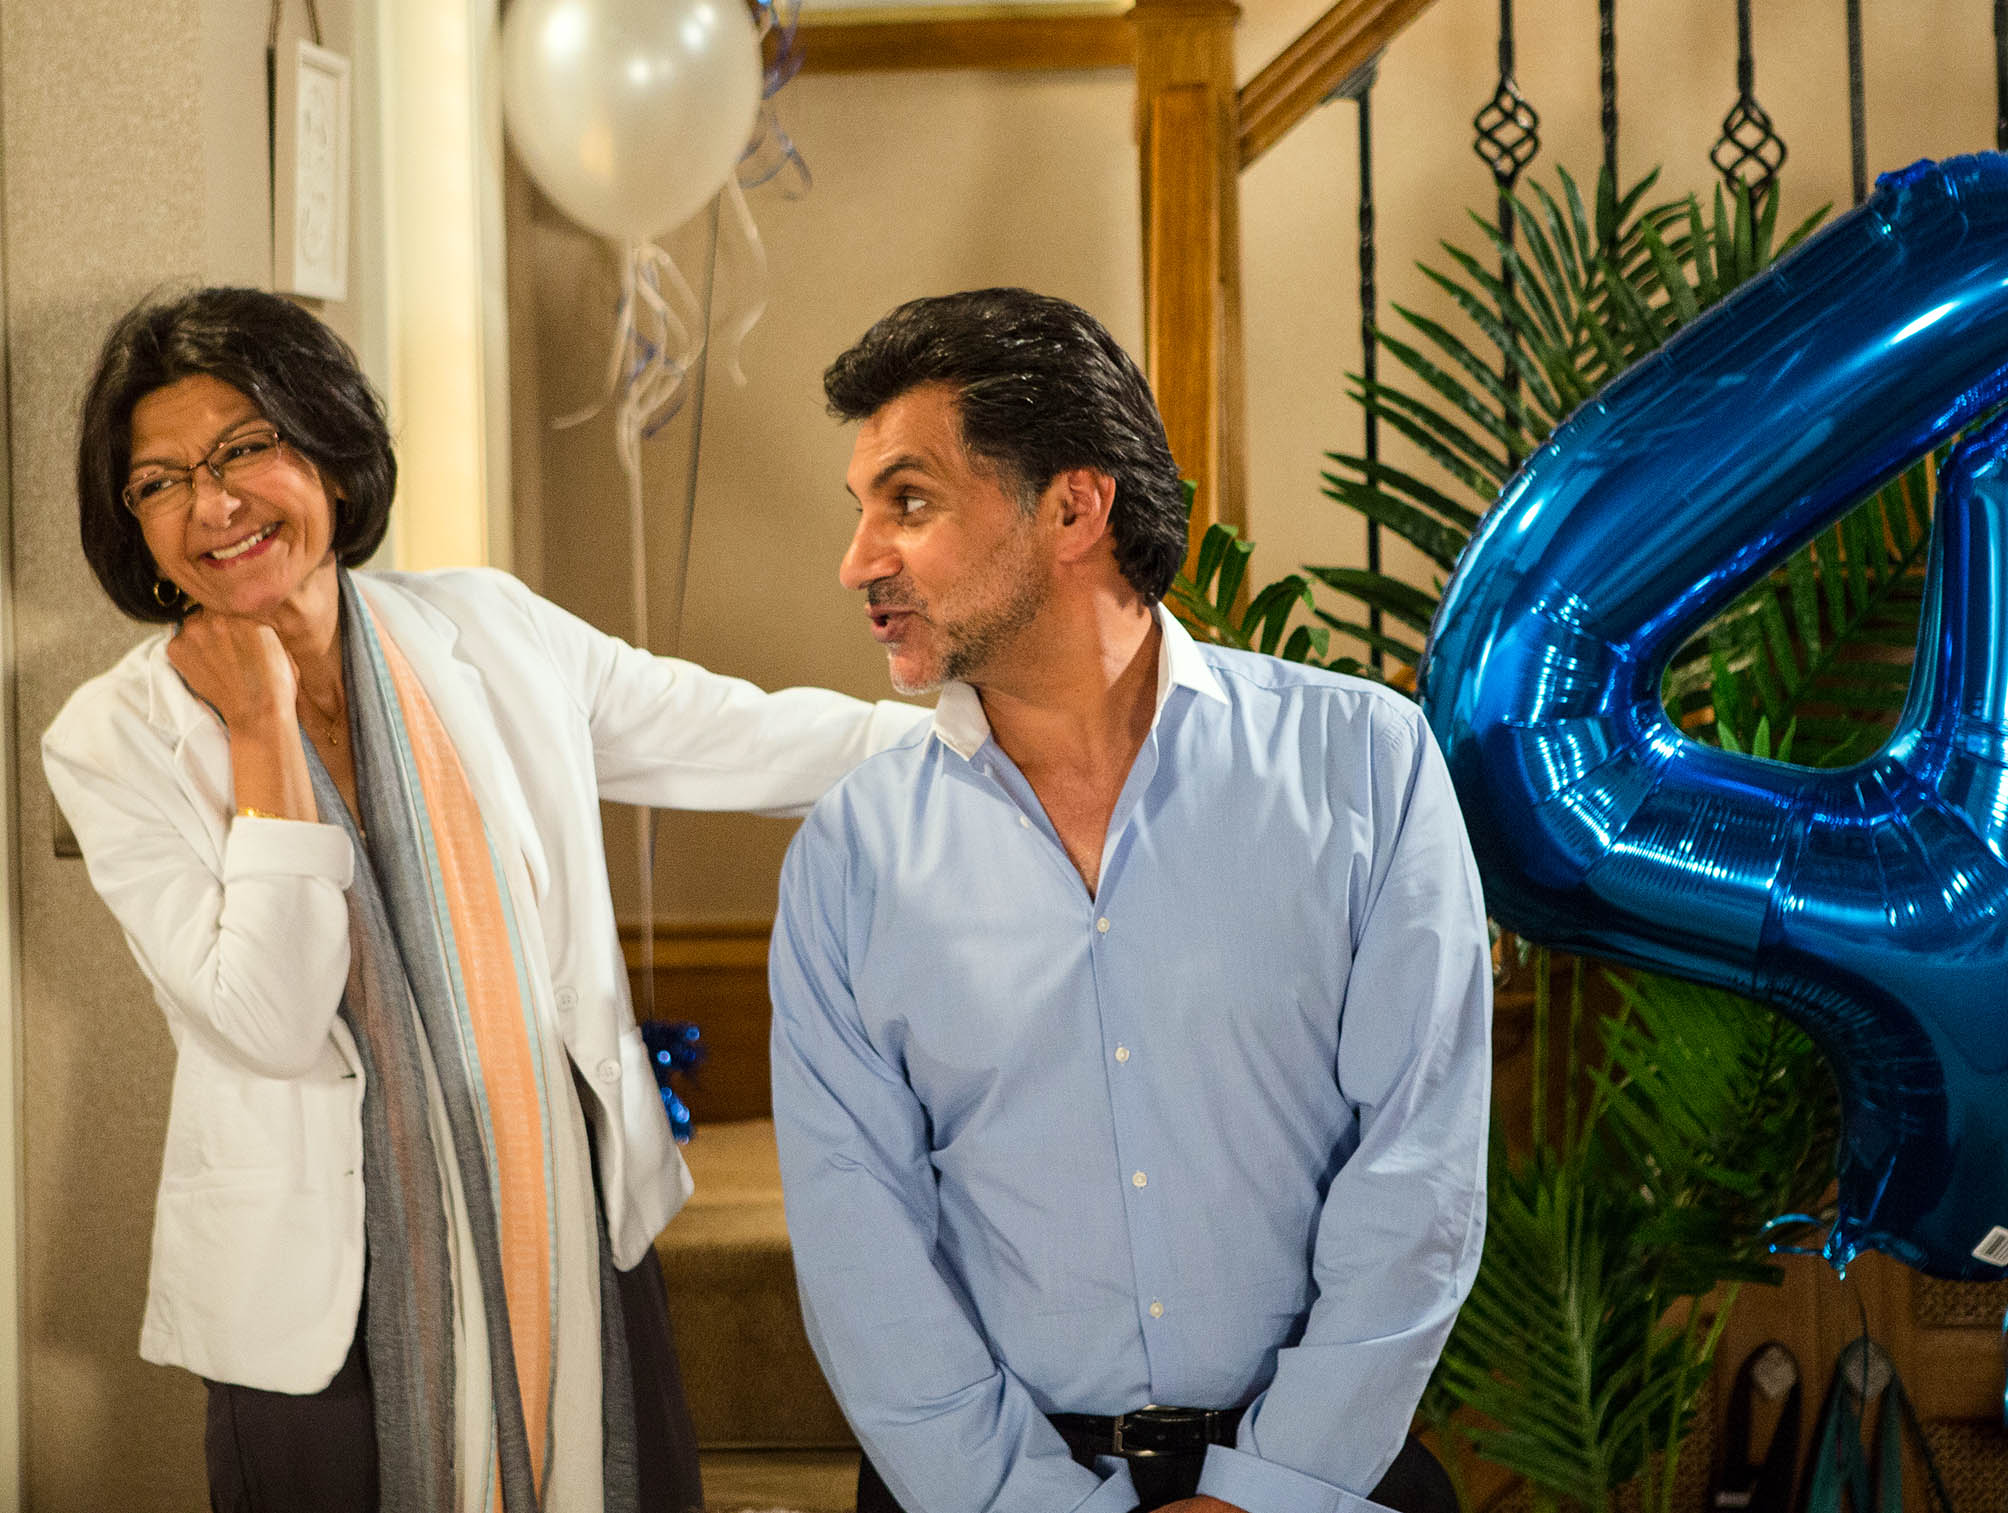 FROM ITV STRICT EMBARGO - NO USE BEFORE TUESDAY 16 AUGUST 2016 Coronation Street - Ep 8973 Monday 22 August 2016 - 1st Ep Sharif Nazir [MARC ANWAR] and Yasmeen Nazir [SHELLEY KING] arrive home and are utterly thrilled to find their grandchildren have arranged a surprise 45th wedding anniversary party. Sharif makes a speech and announces to Yasmeen he's booked a holiday, the honeymoon they never had. However he's interrupted by the arrival of their old friend Sonia Rahman [SUDHA BHUCHAR], who clearly upset, explains her husband has thrown her out. While a concerned Yasmeen heads off to make Sonia a cup of tea, grim-faced Sharif makes it clear he's unimpressed by her surprise visit. Picture contact: david.crook@itv.com on 0161 952 6214 Photographer: Mark Bruce This photograph is (C) ITV Plc and can only be reproduced for editorial purposes directly in connection with the programme or event mentioned above, or ITV plc. Once made available by ITV plc Picture Desk, this photograph can be reproduced once only up until the transmission [TX] date and no reproduction fee will be charged. Any subsequent usage may incur a fee. This photograph must not be manipulated [excluding basic cropping] in a manner which alters the visual appearance of the person photographed deemed detrimental or inappropriate by ITV plc Picture Desk. This photograph must not be syndicated to any other company, publication or website, or permanently archived, without the express written permission of ITV Plc Picture Desk. Full Terms and conditions are available on the website www.itvpictures.com